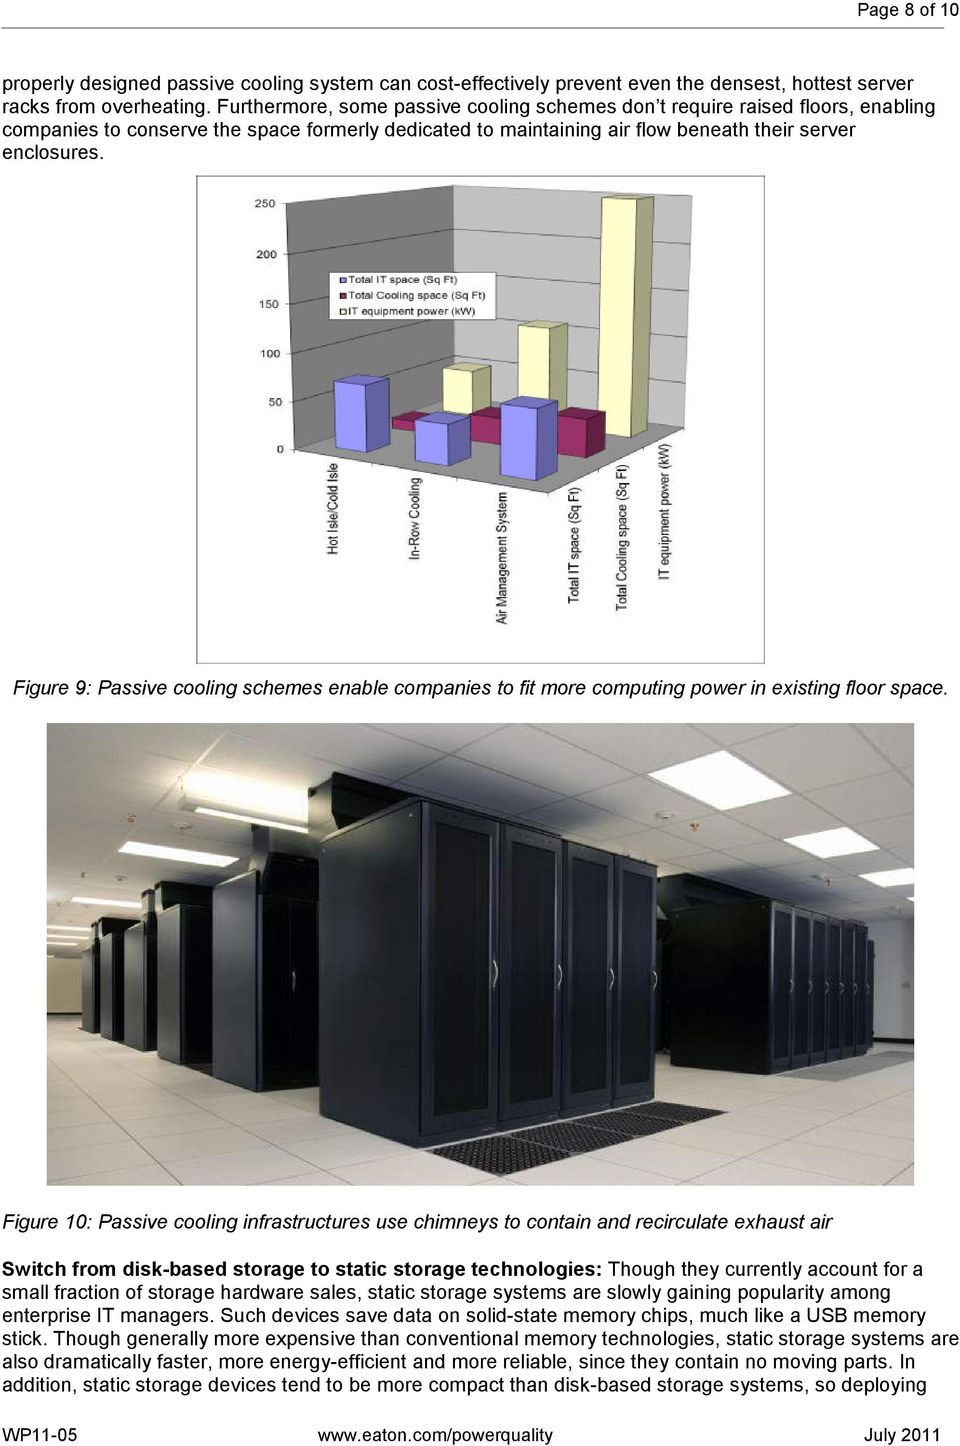 Figure 9: Passive cooling schemes enable companies to fit more computing power in existing floor space.